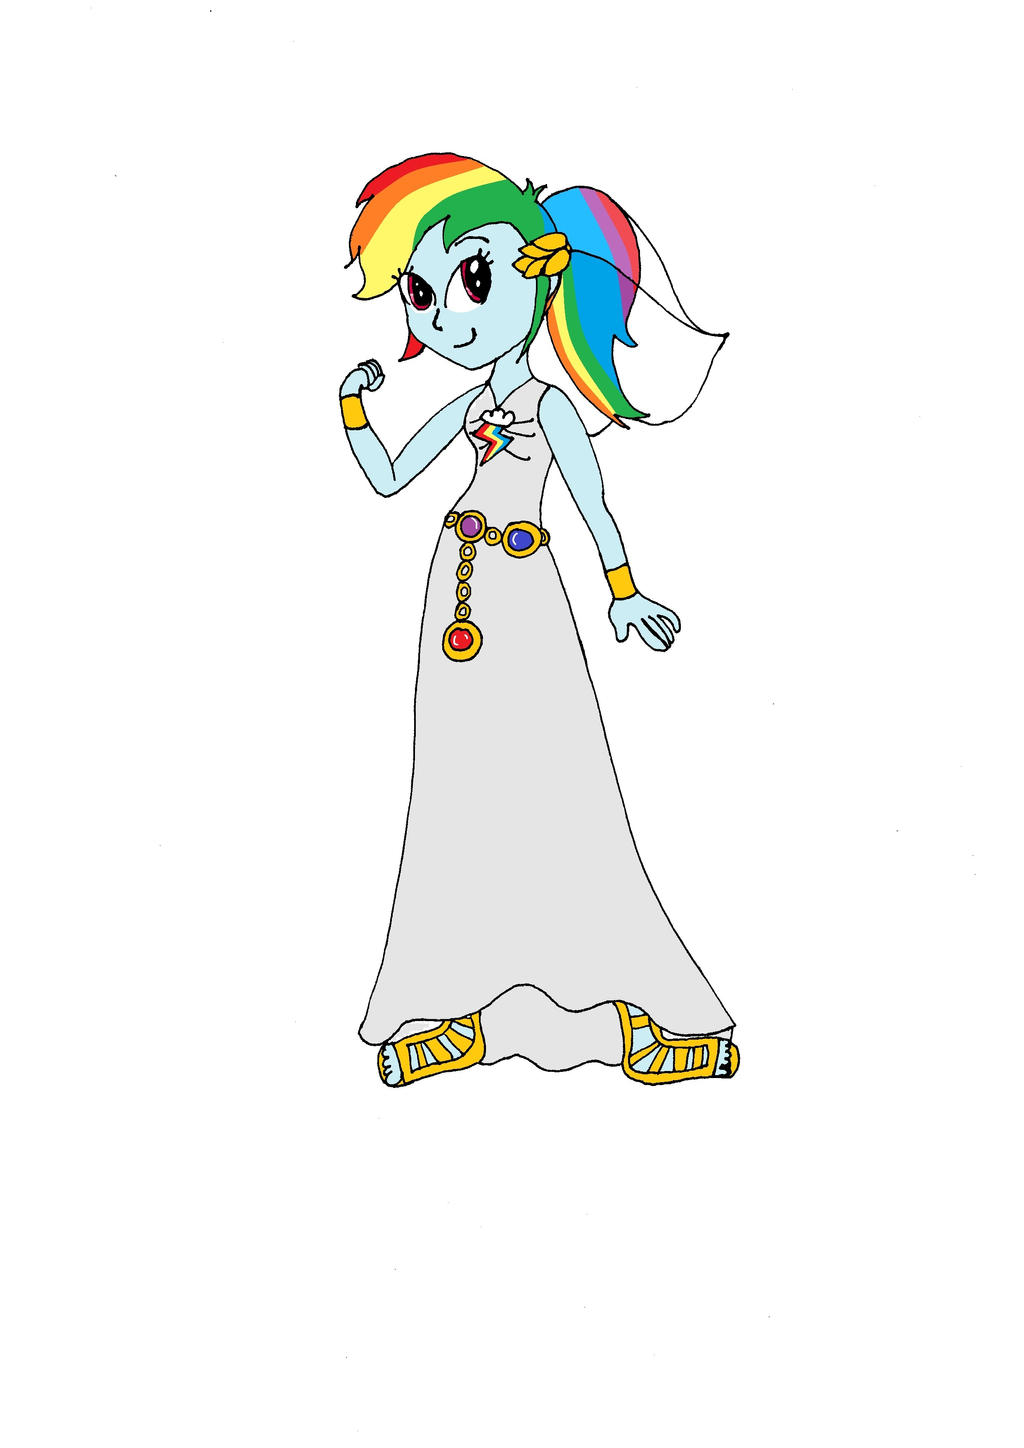 Rainbow dash wedding dress by gratzalia on deviantart for Rainbow wedding dress say yes to the dress